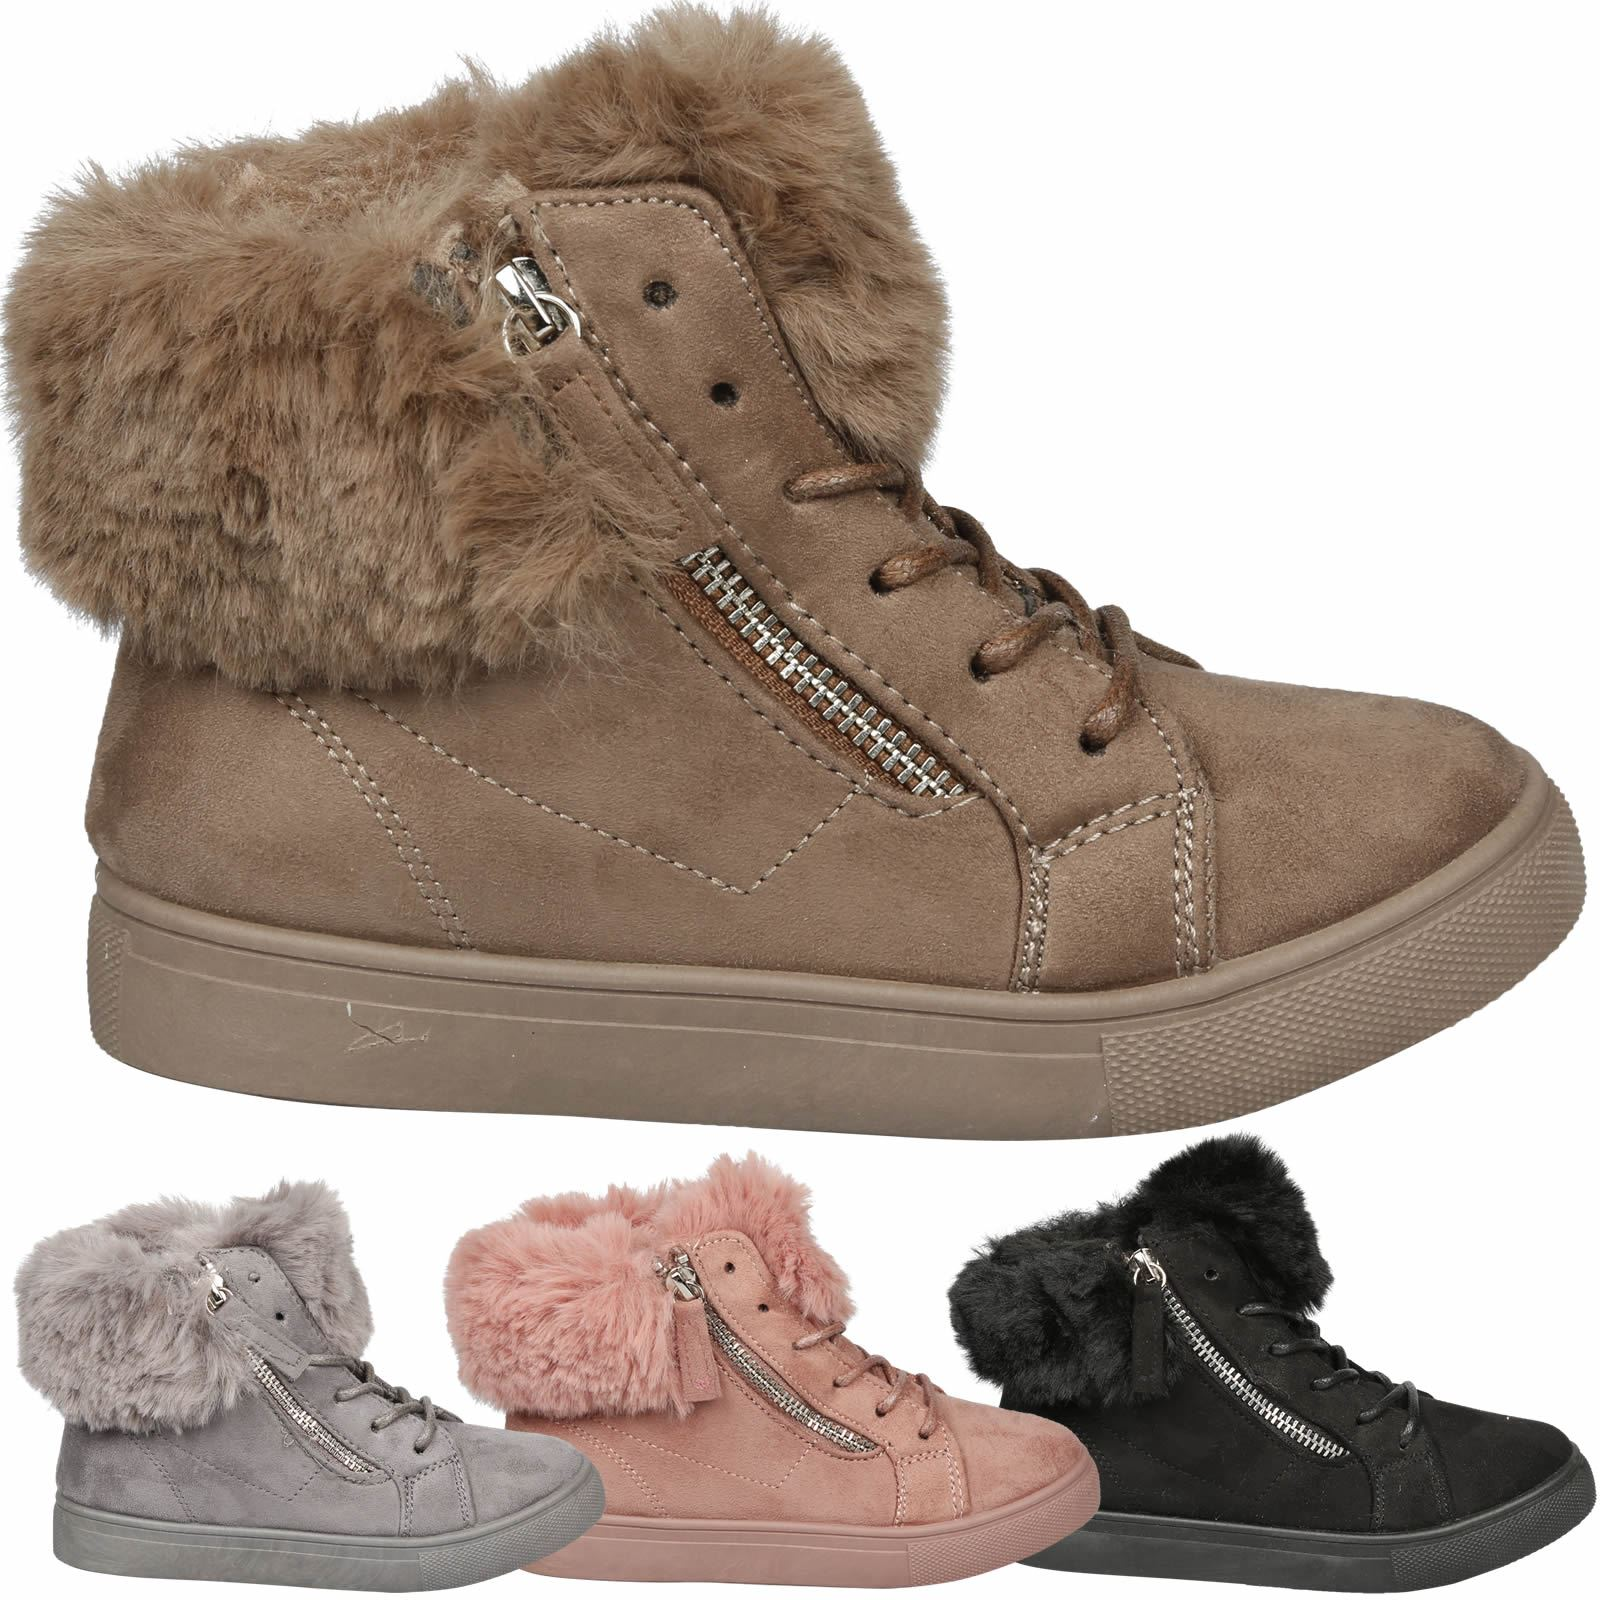 d1877fdec75bff Desiree Girls Fur Lined Zip Detail Lace Up Platform Ankle Boots Trainers  Pumps